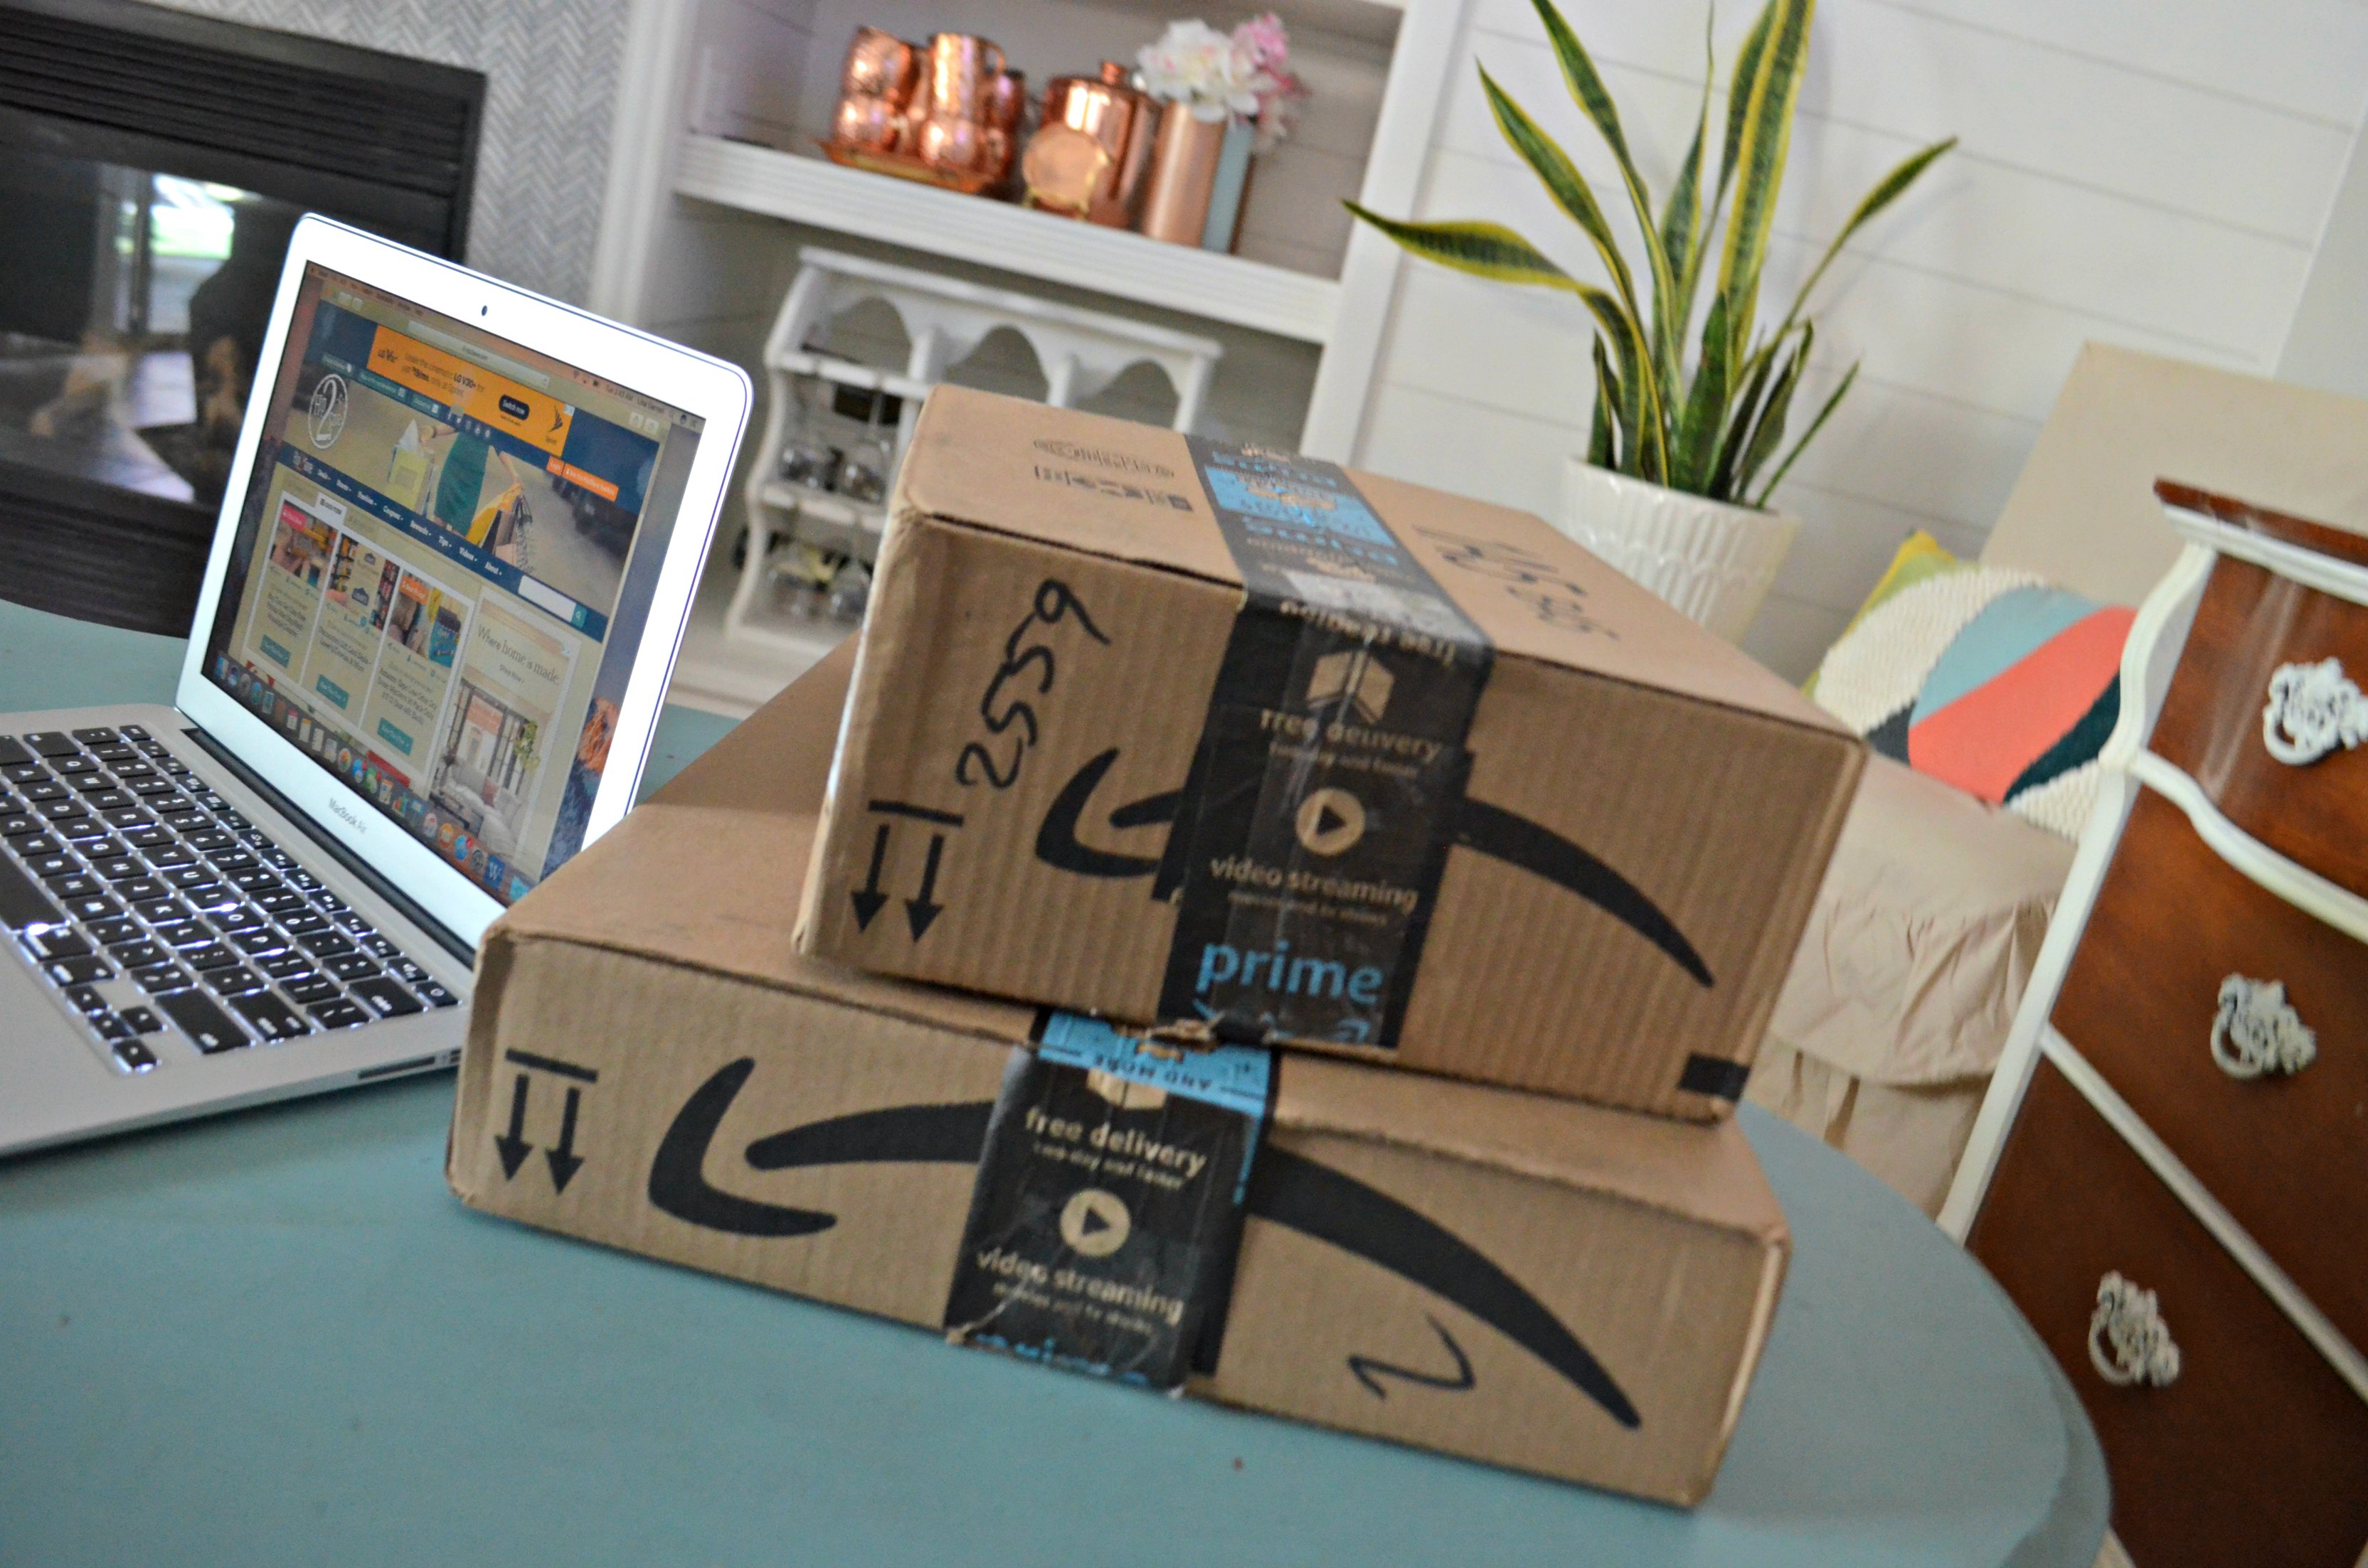 amazon prime day deals | Amazon boxes stacked on a table